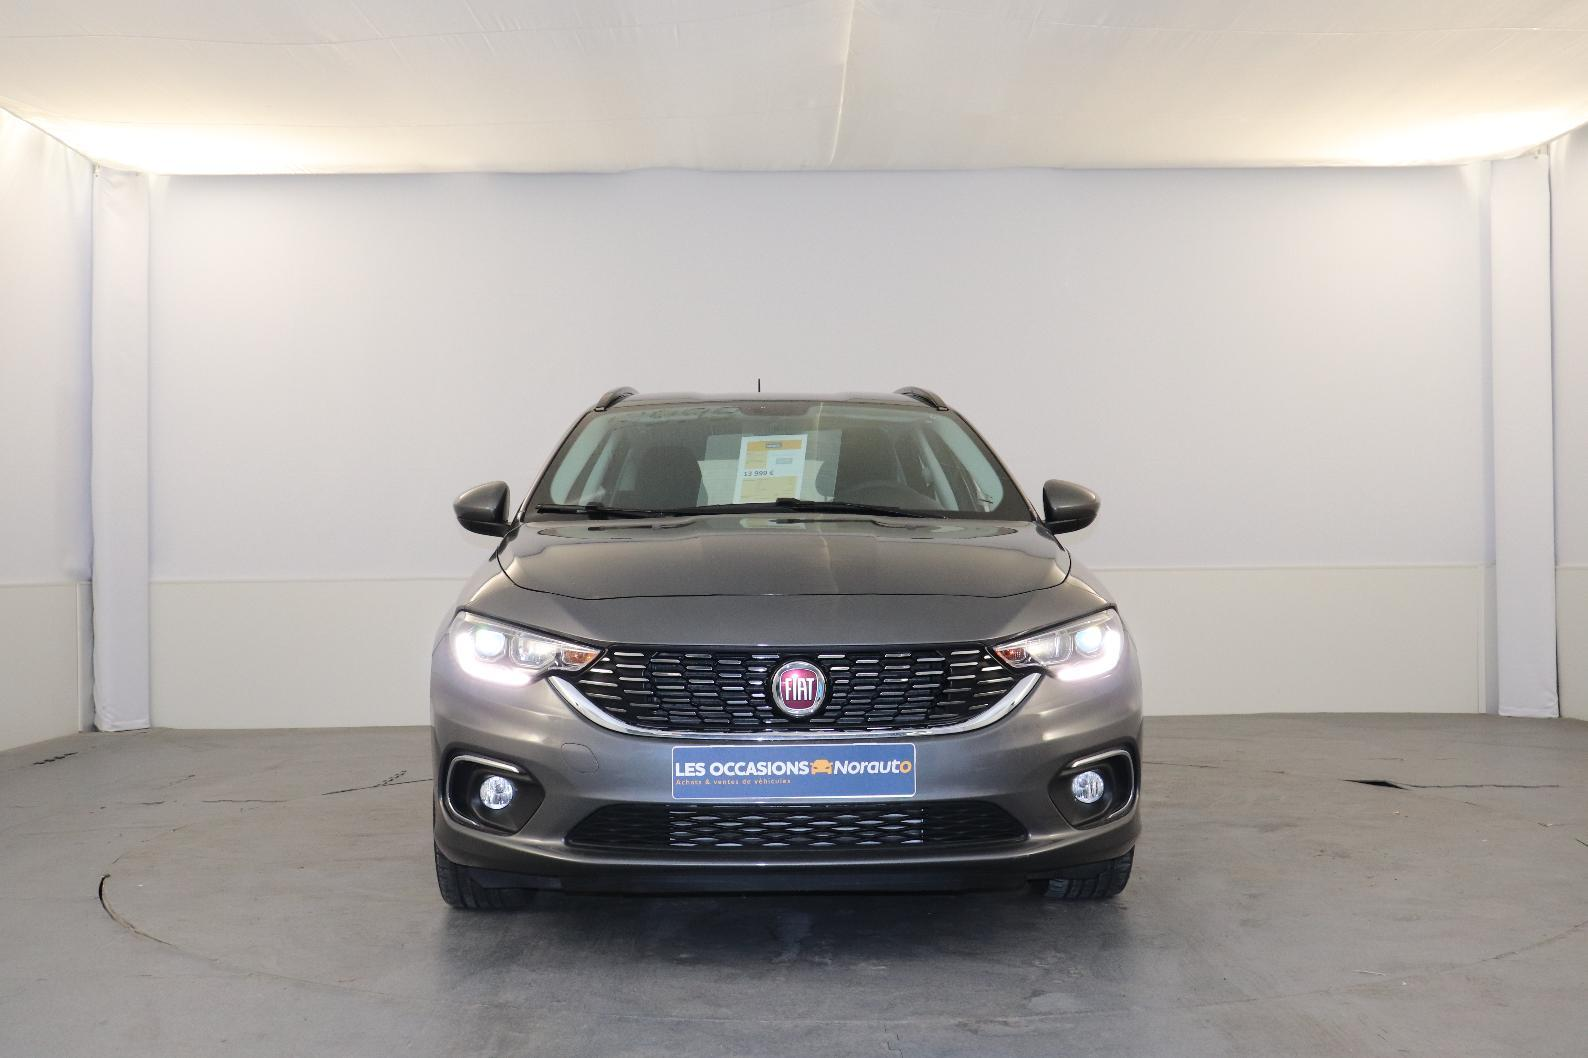 FIAT TIPO STATION WAGON Tipo Station Wagon 1.6 MultiJet 120 ch Start/Stop Easy